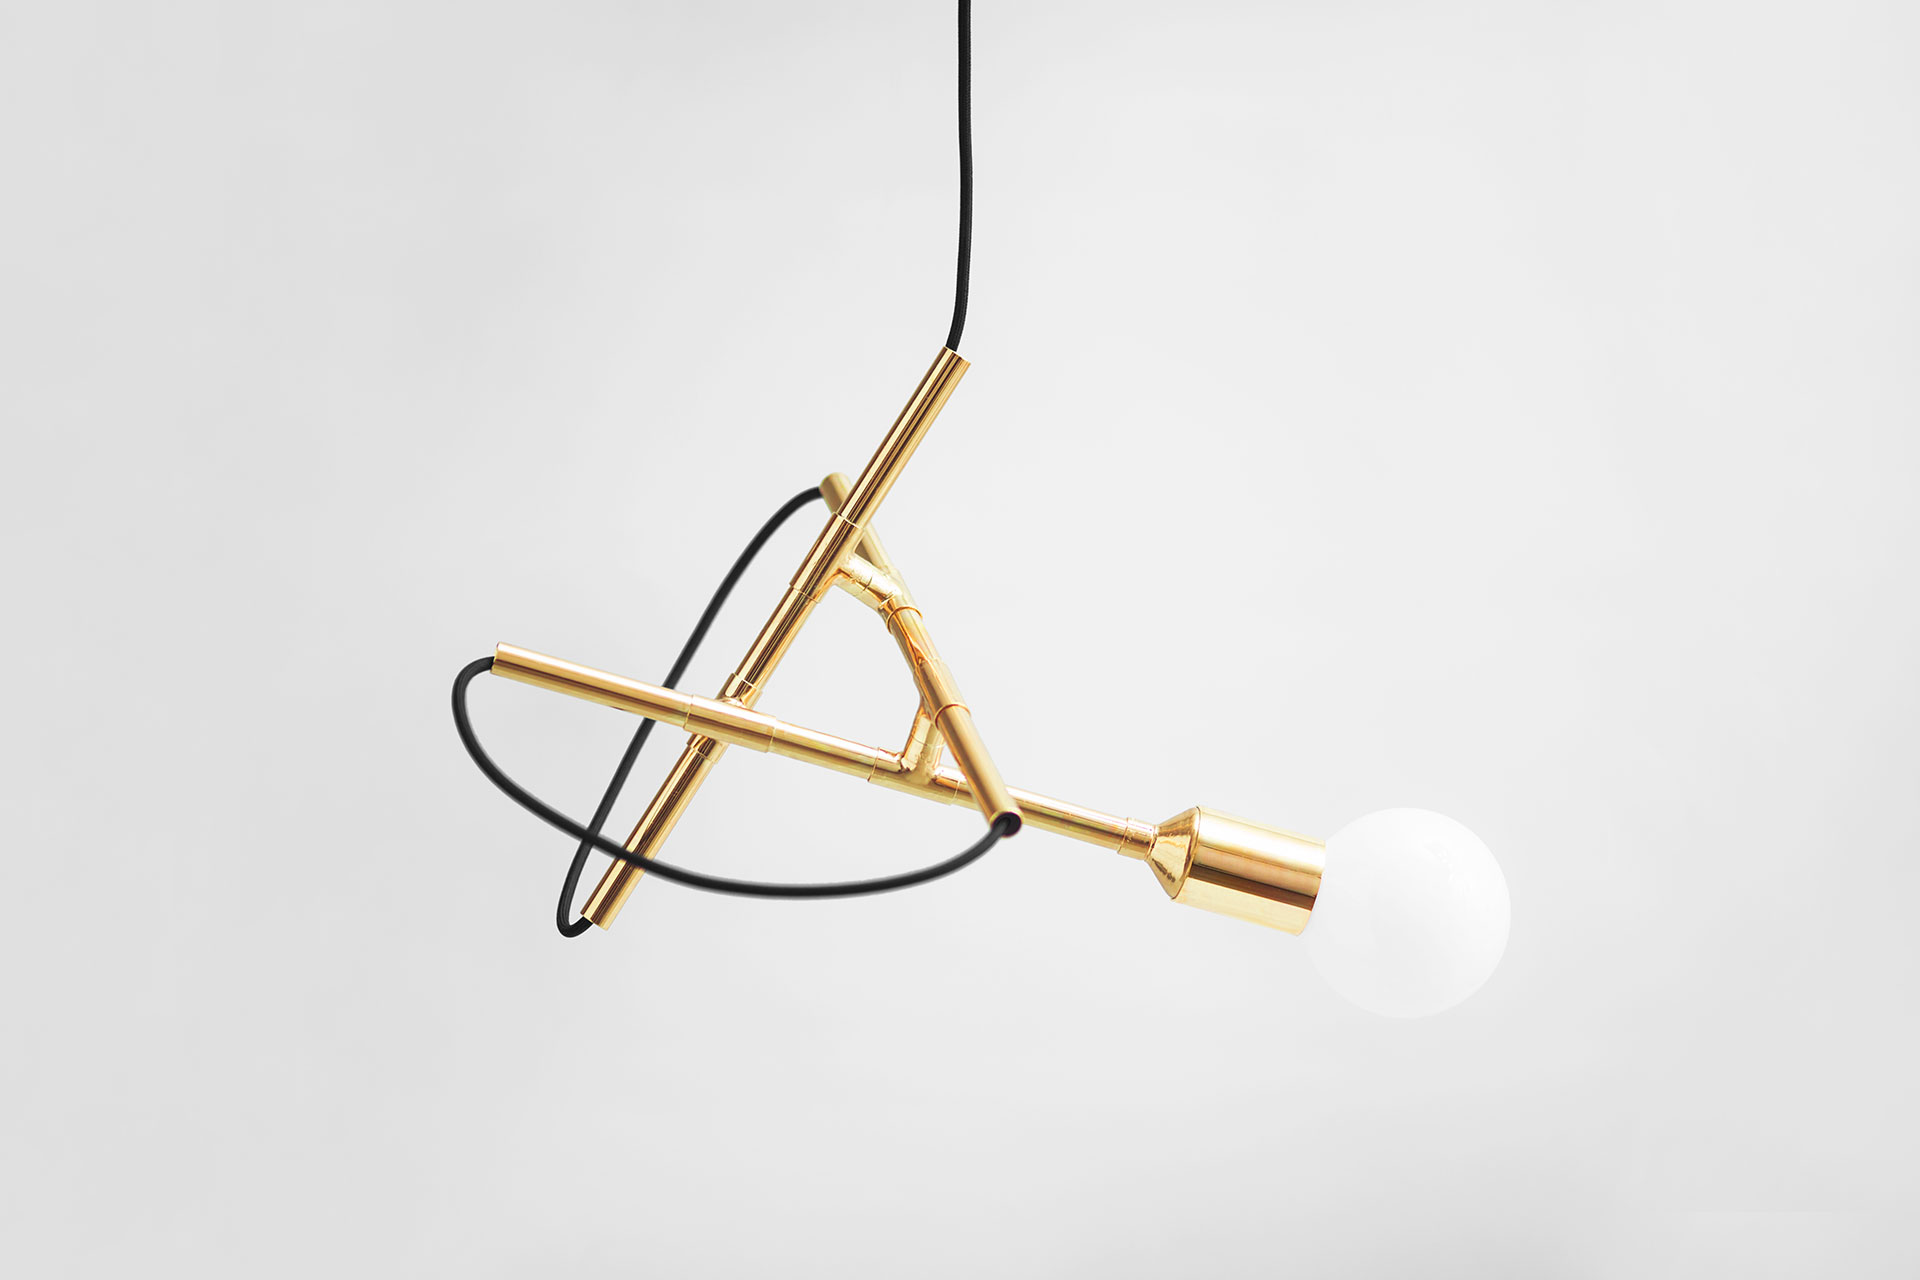 Unique pendant lamp in trendy brass inspired by mid-century modern design